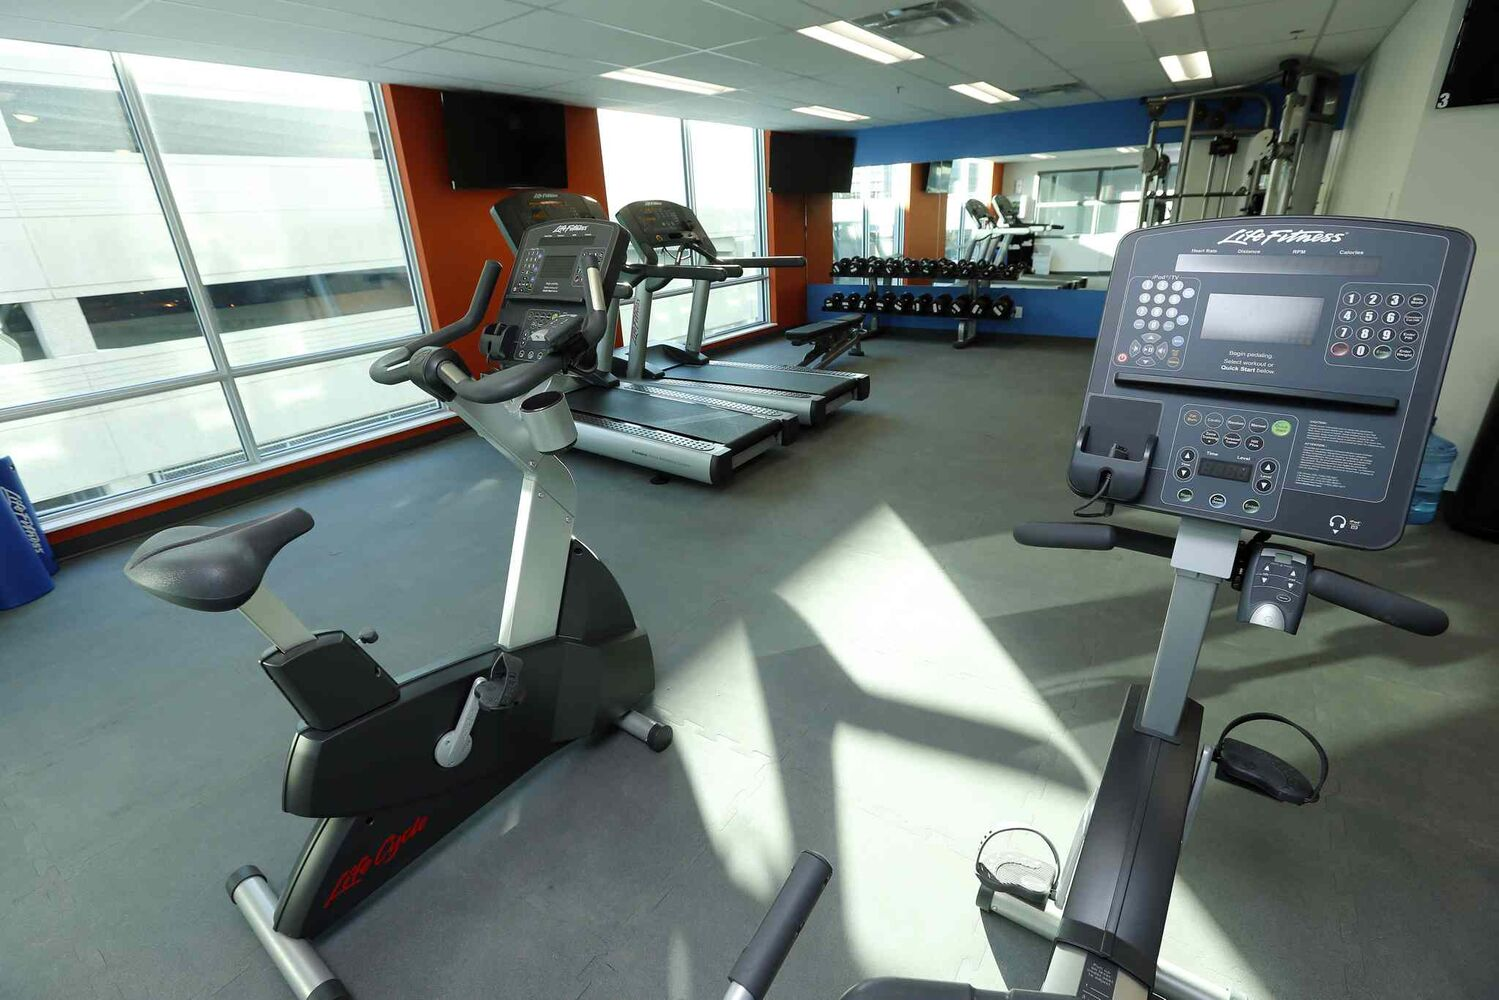 The exercise room .